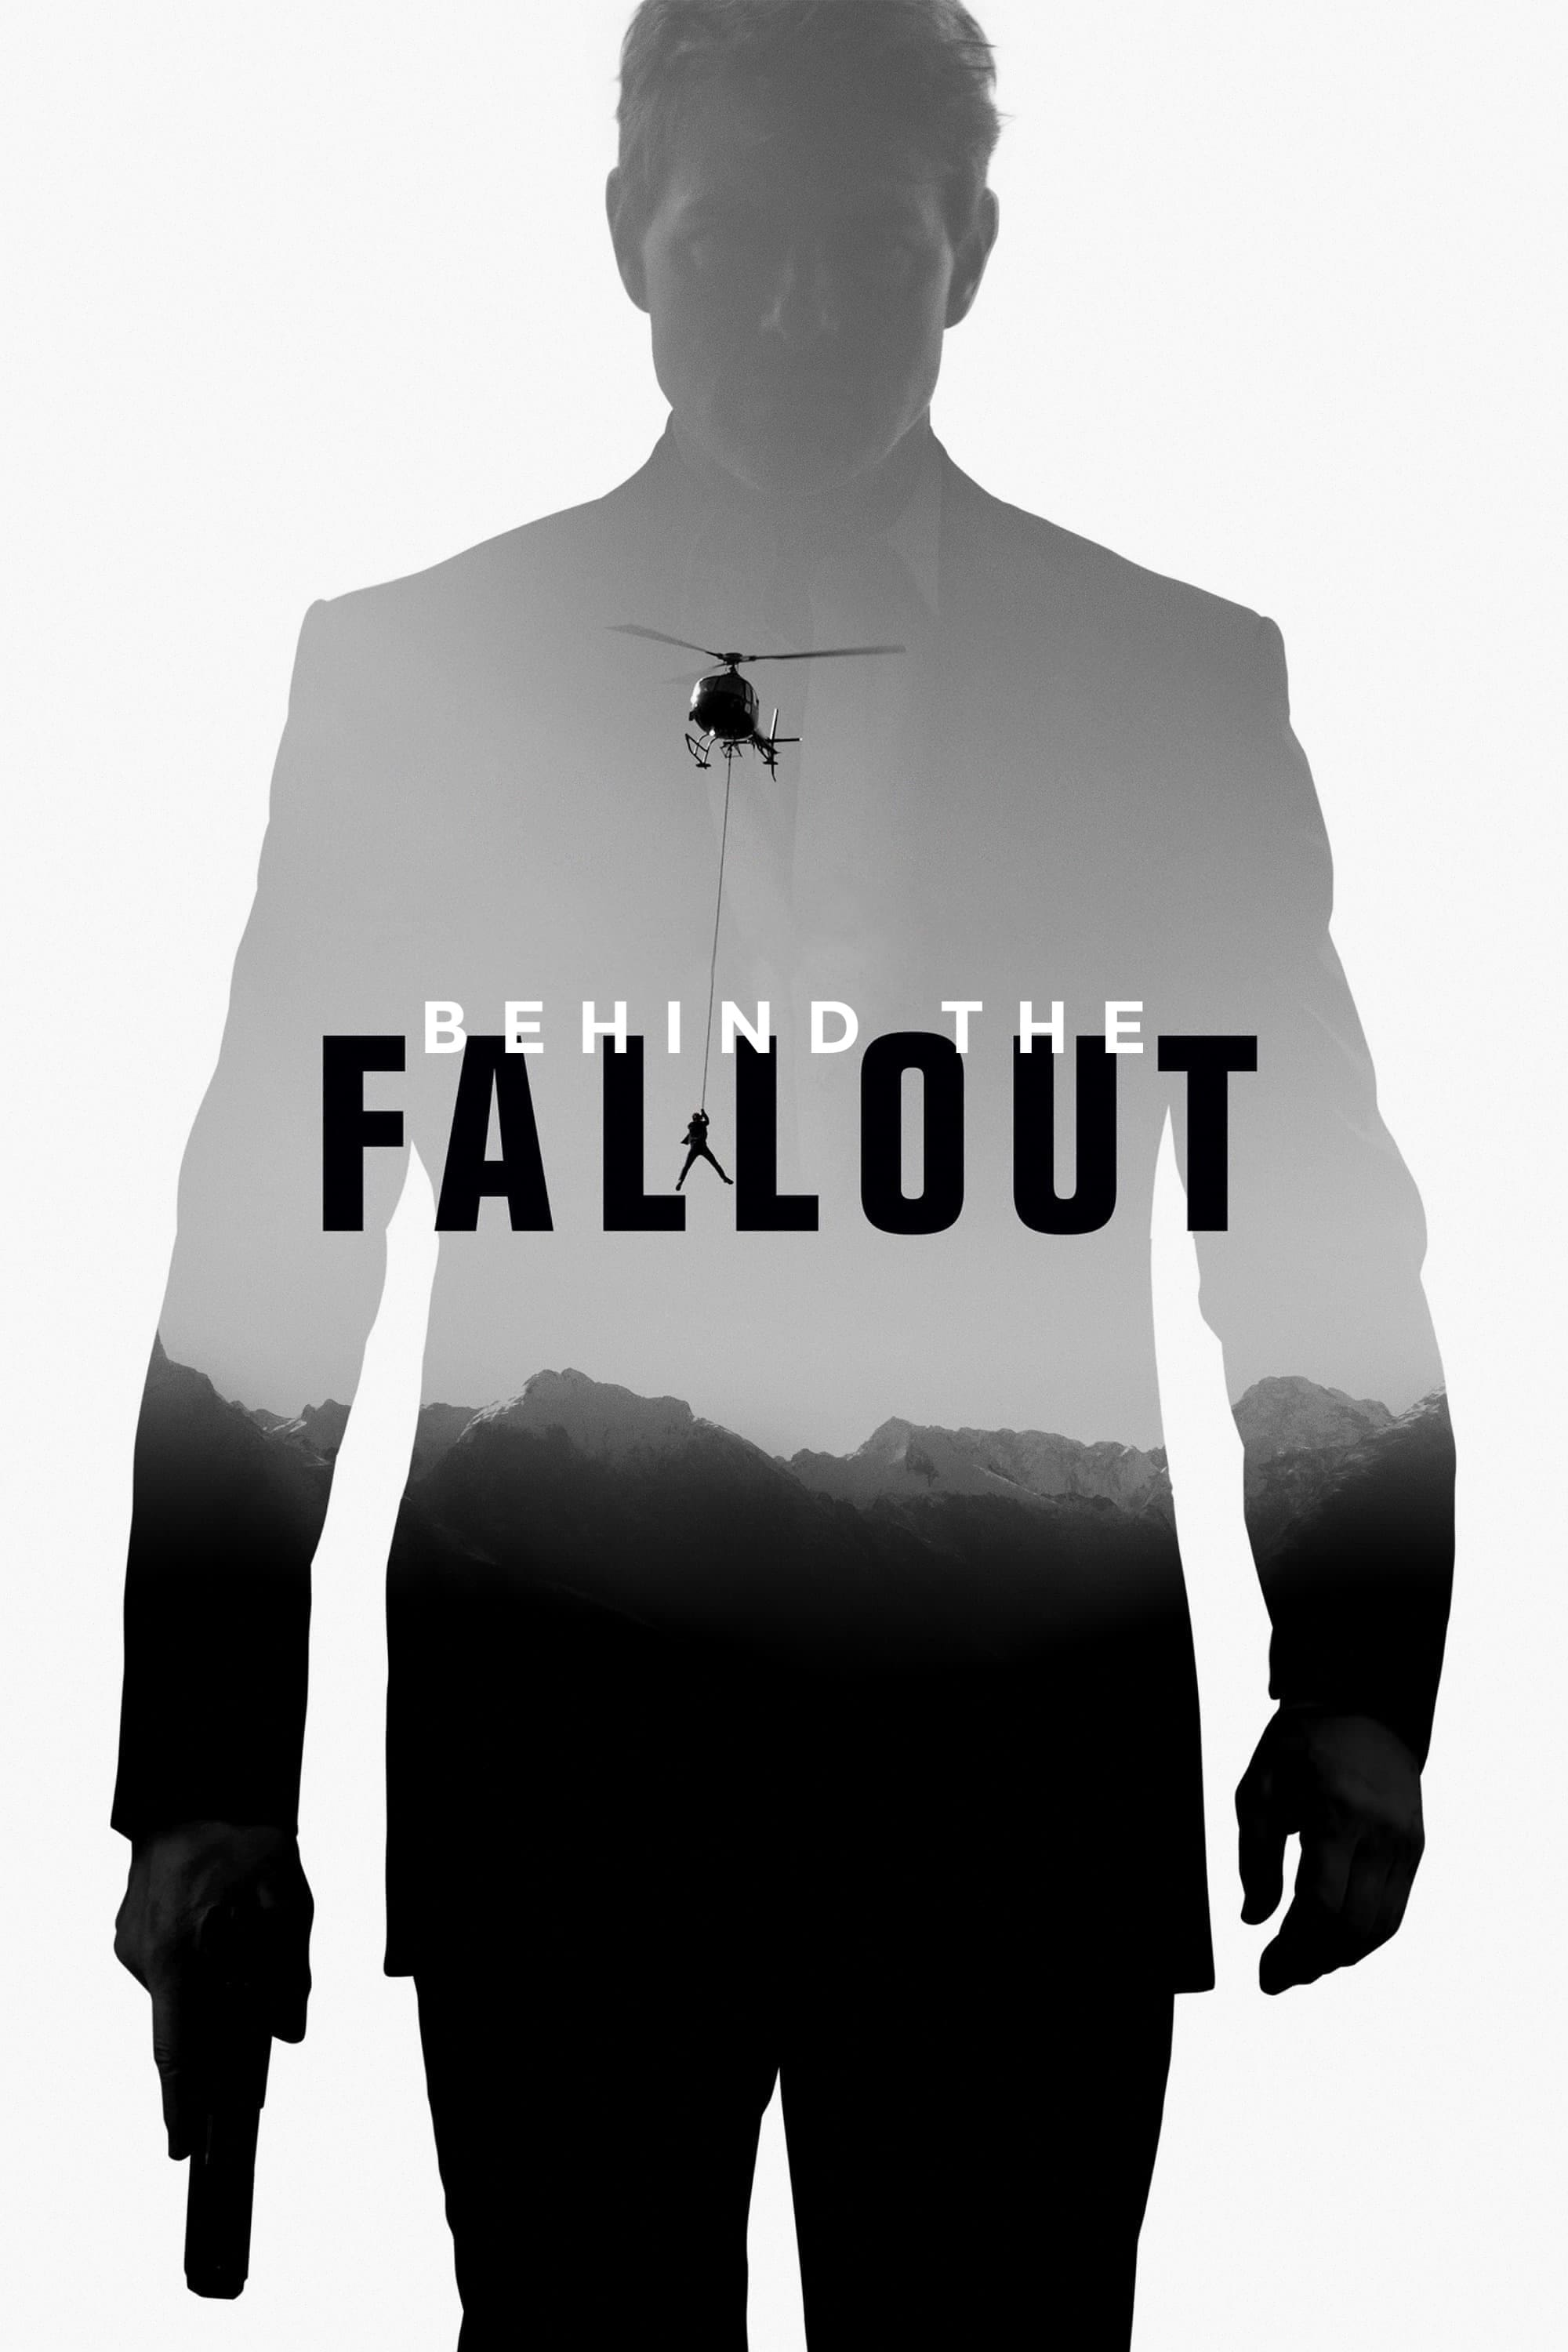 Behind the Fallout (2018)